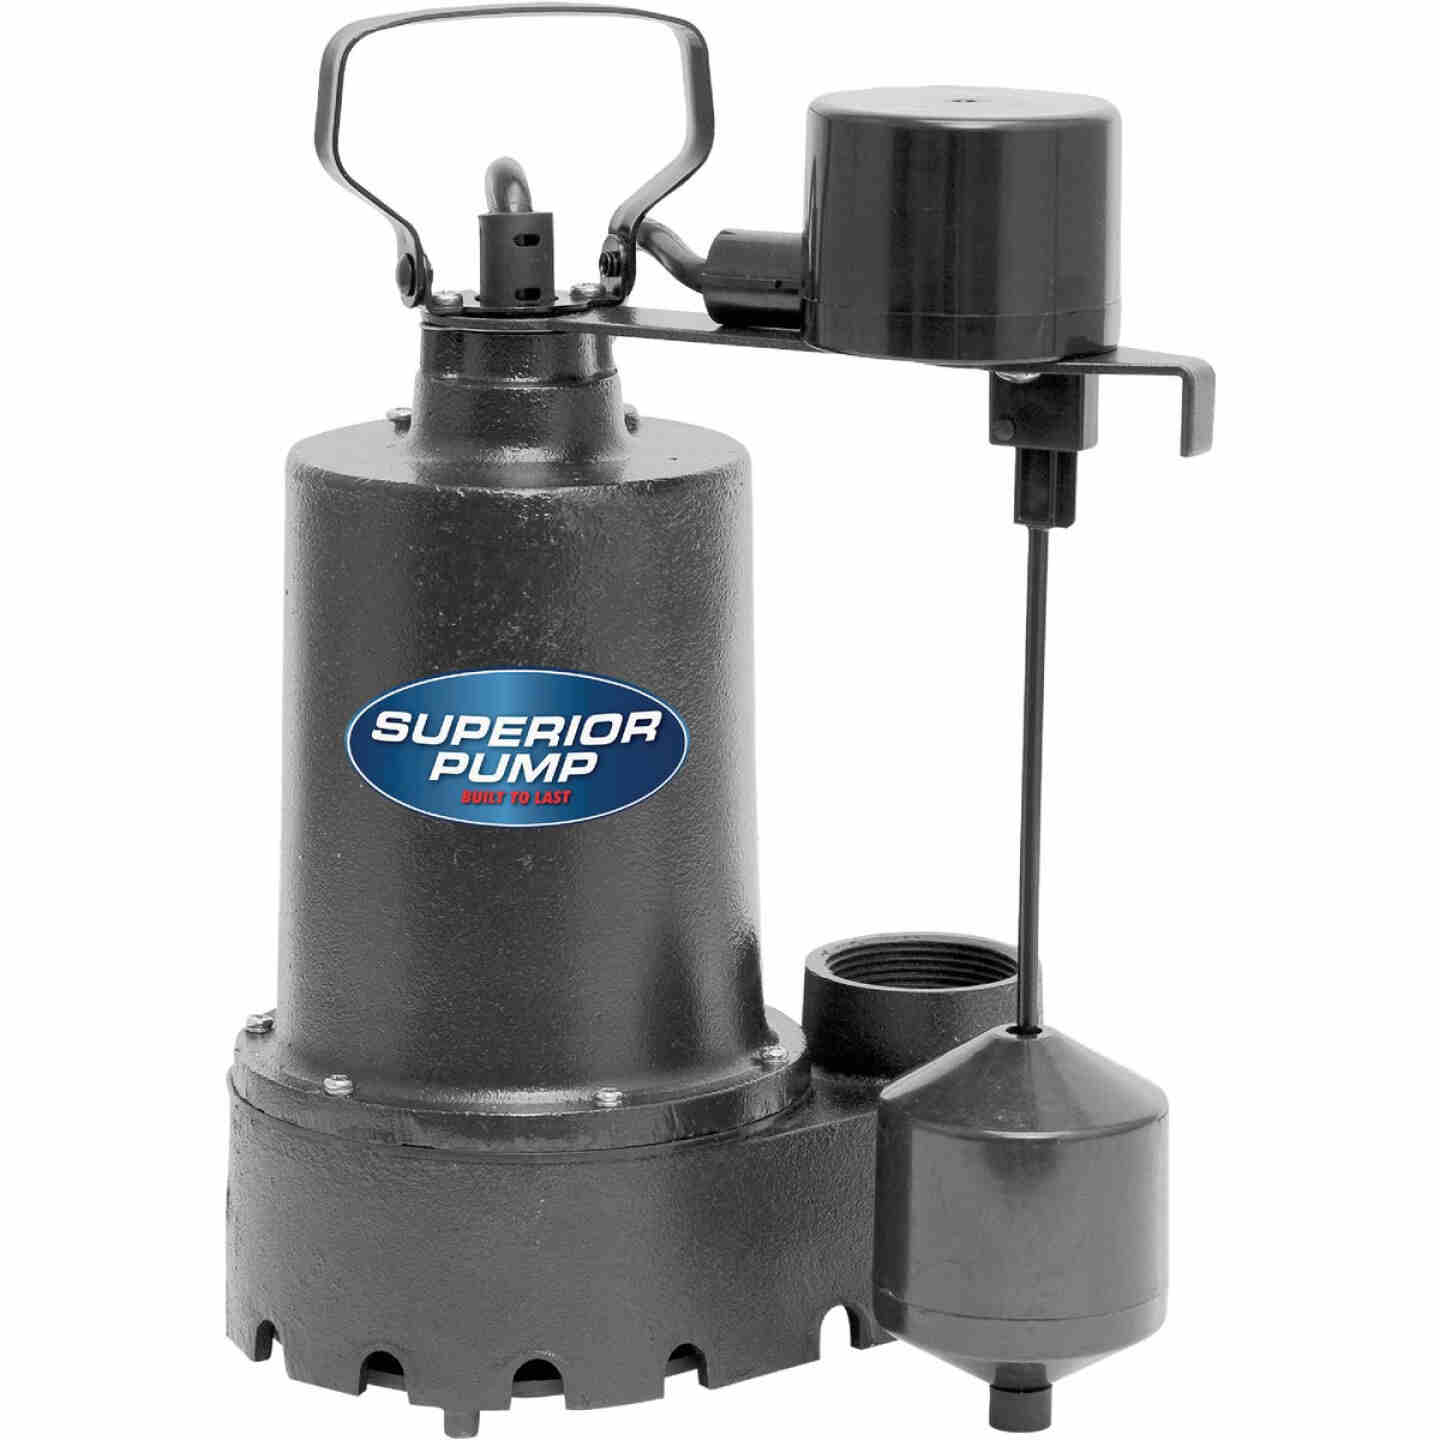 Superior Pump 1/3 HP Cast Iron Submersible Sump Pump with Vertical Float Switch & Stainless Steel Impeller Image 1